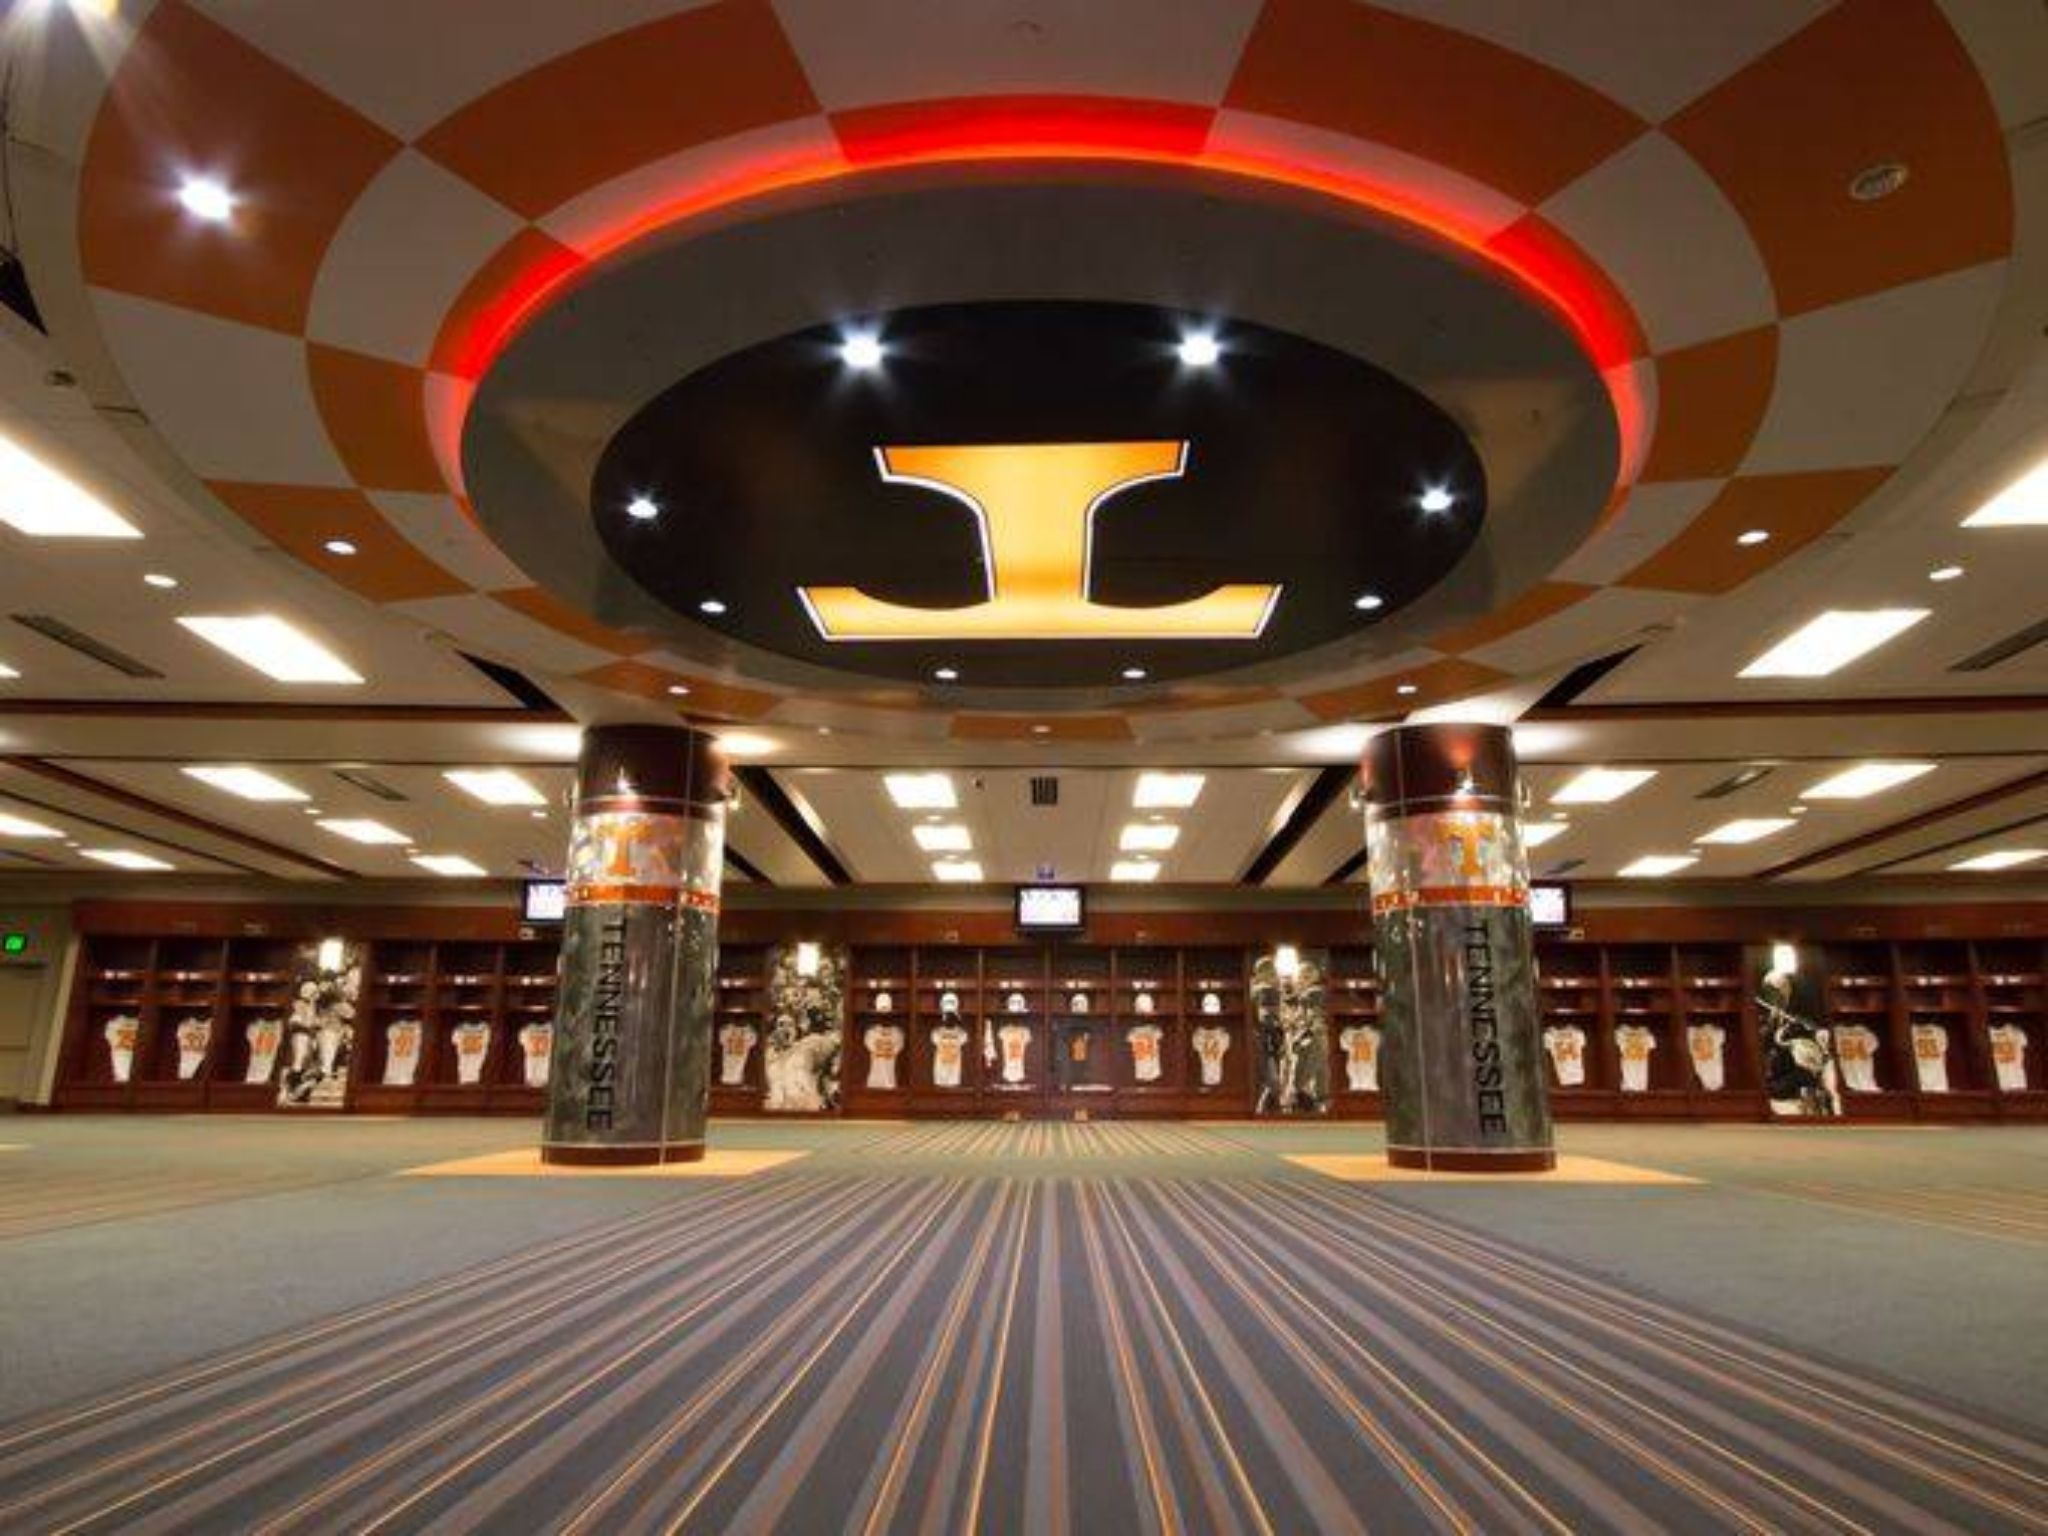 Tennessee Vols Locker Room Pictures